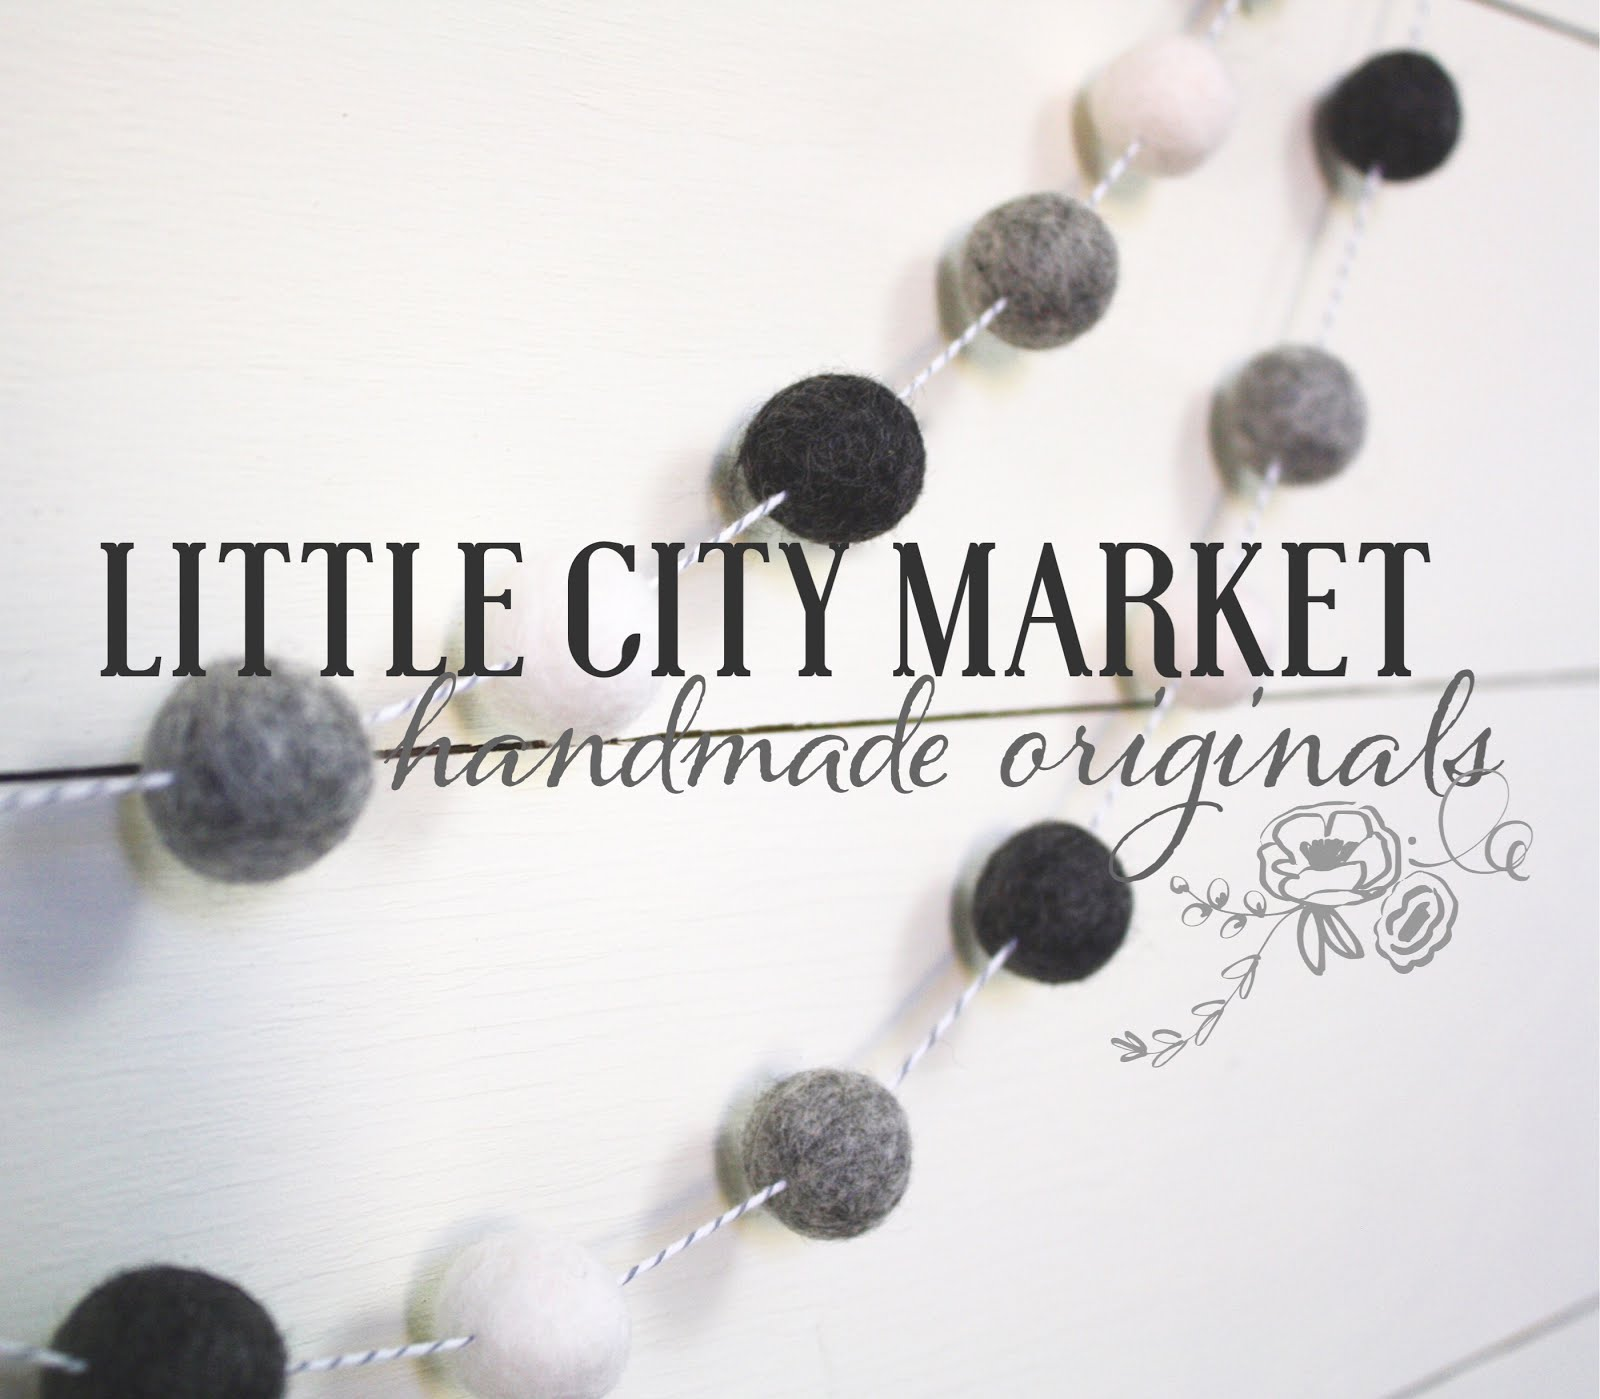 Little City Market